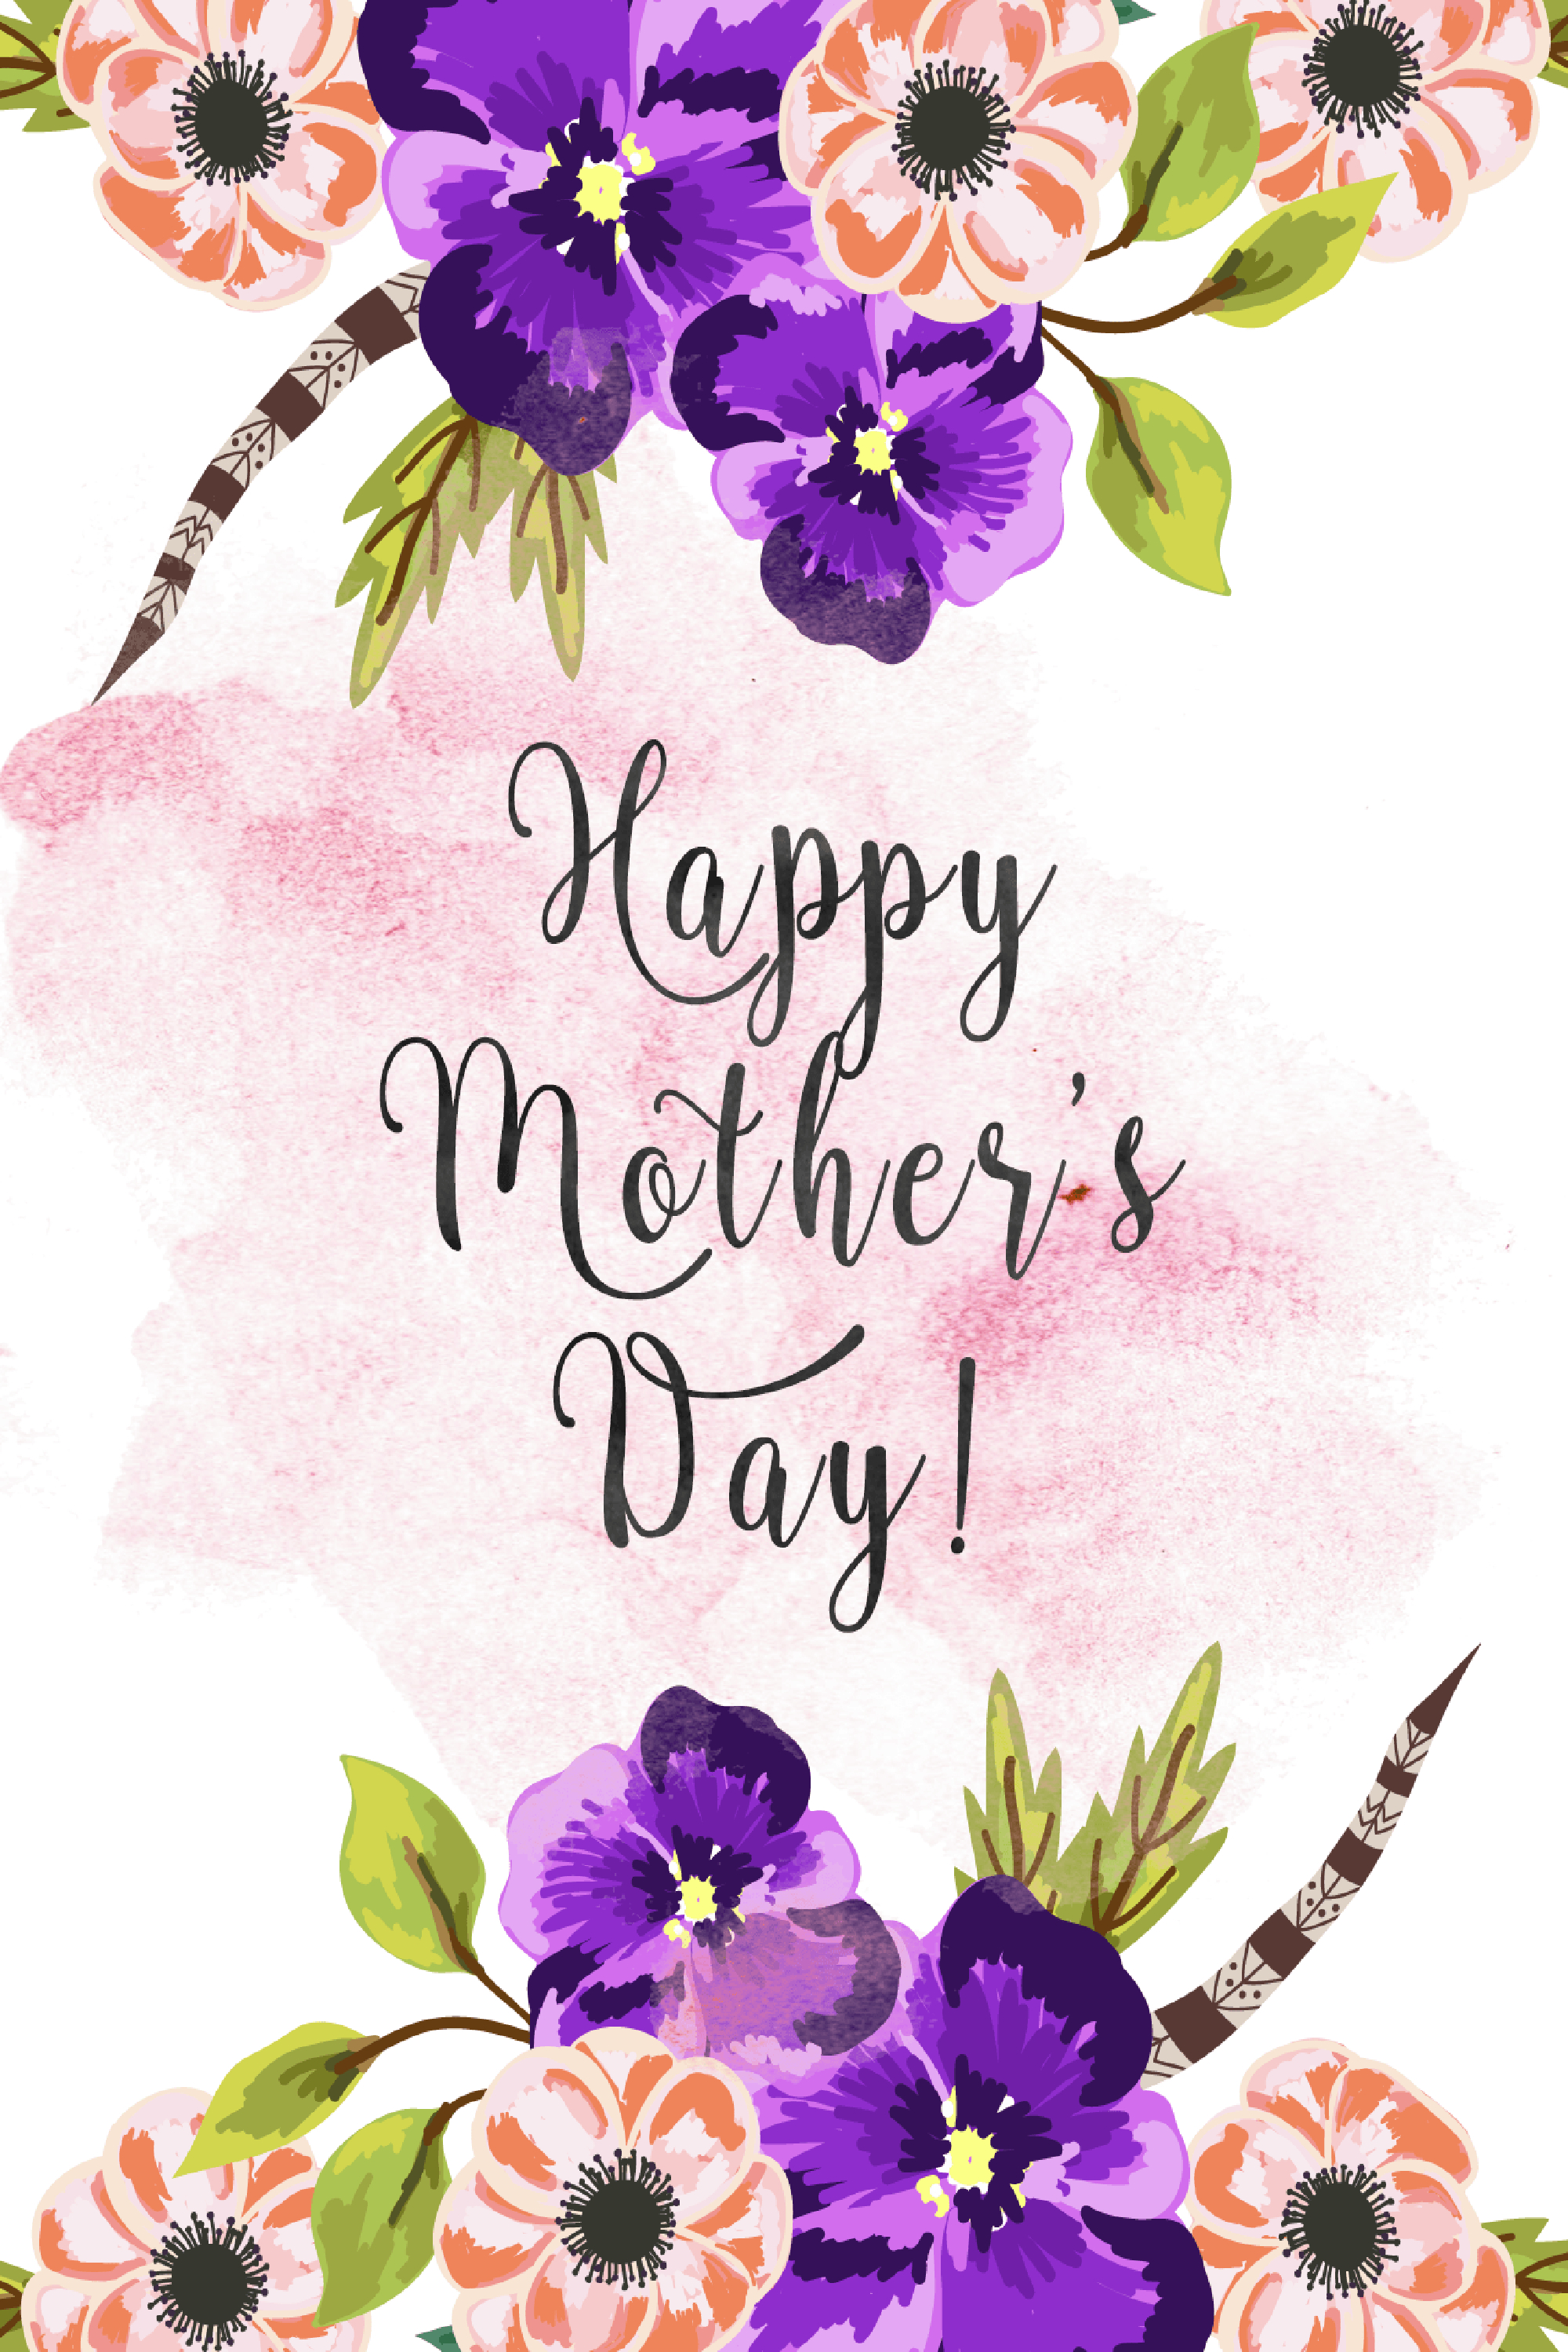 30 Cute Free Printable Mothers Day Cards - Mom Cards You Can Print - Free Printable Mothers Day Cards To My Wife